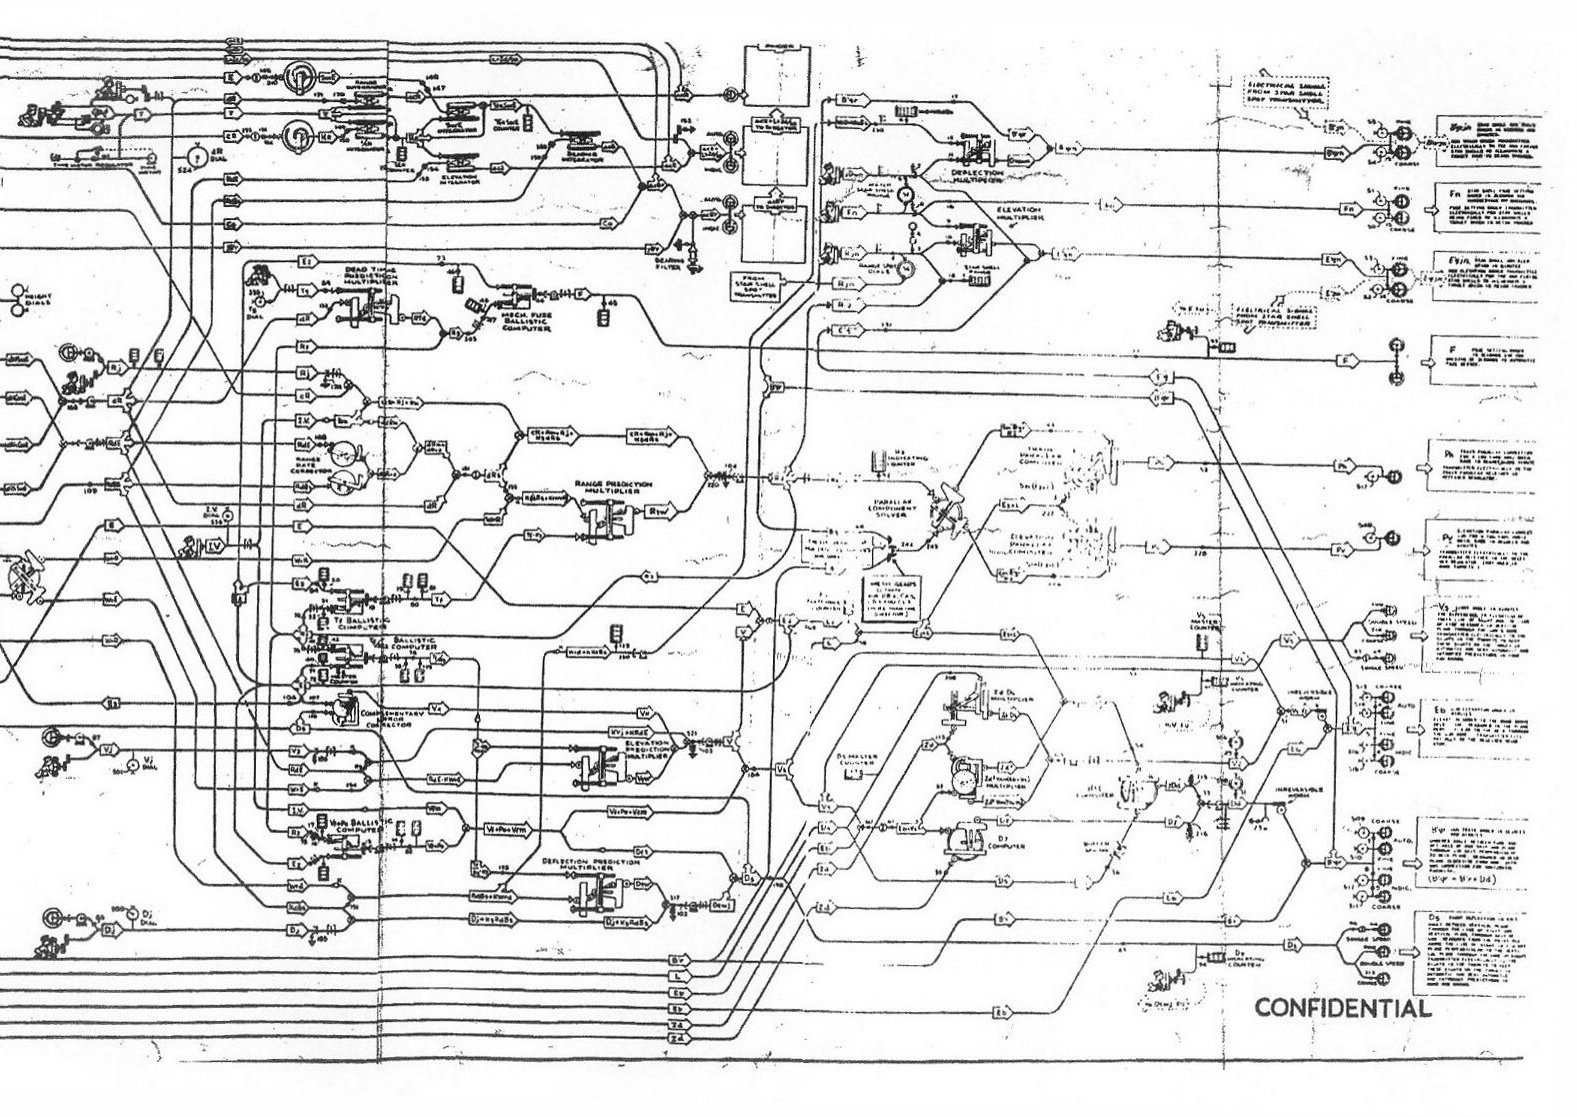 flow schematic computer mk 1mod 7 rh eugeneleeslover com circuit diagram of computer monitor circuit diagram of computer keyboard